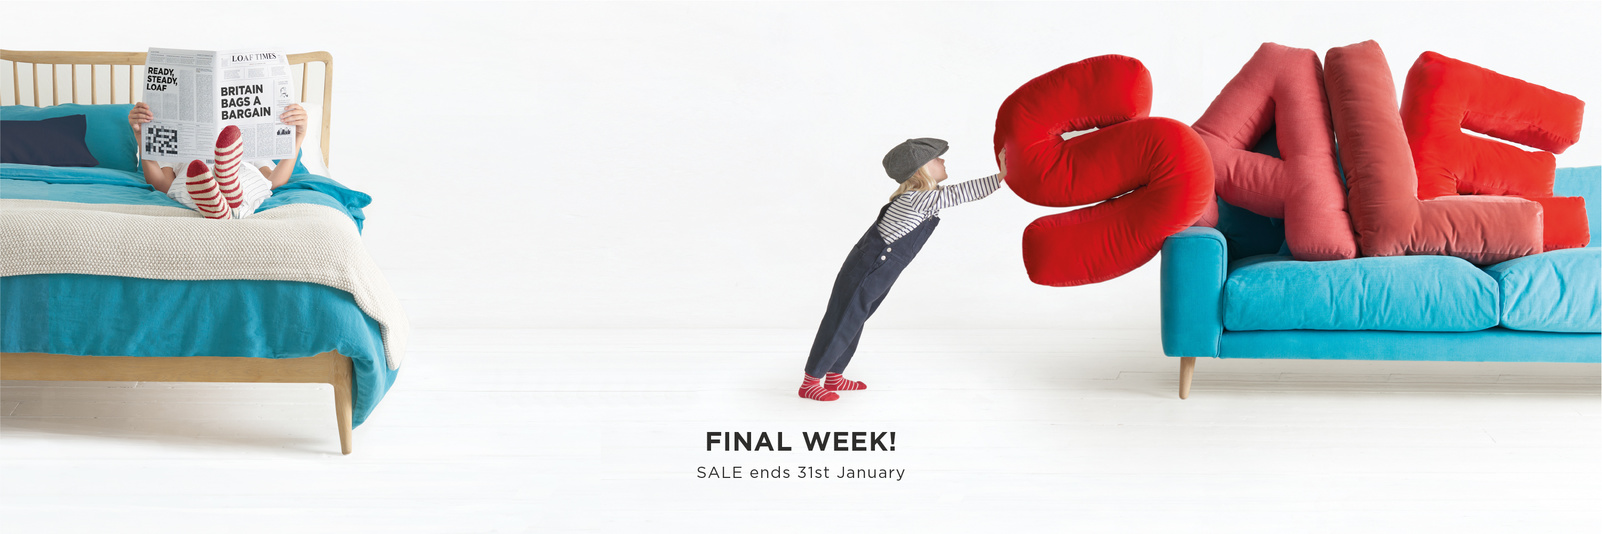 Final Week! Sale ends 31st January | Loaf